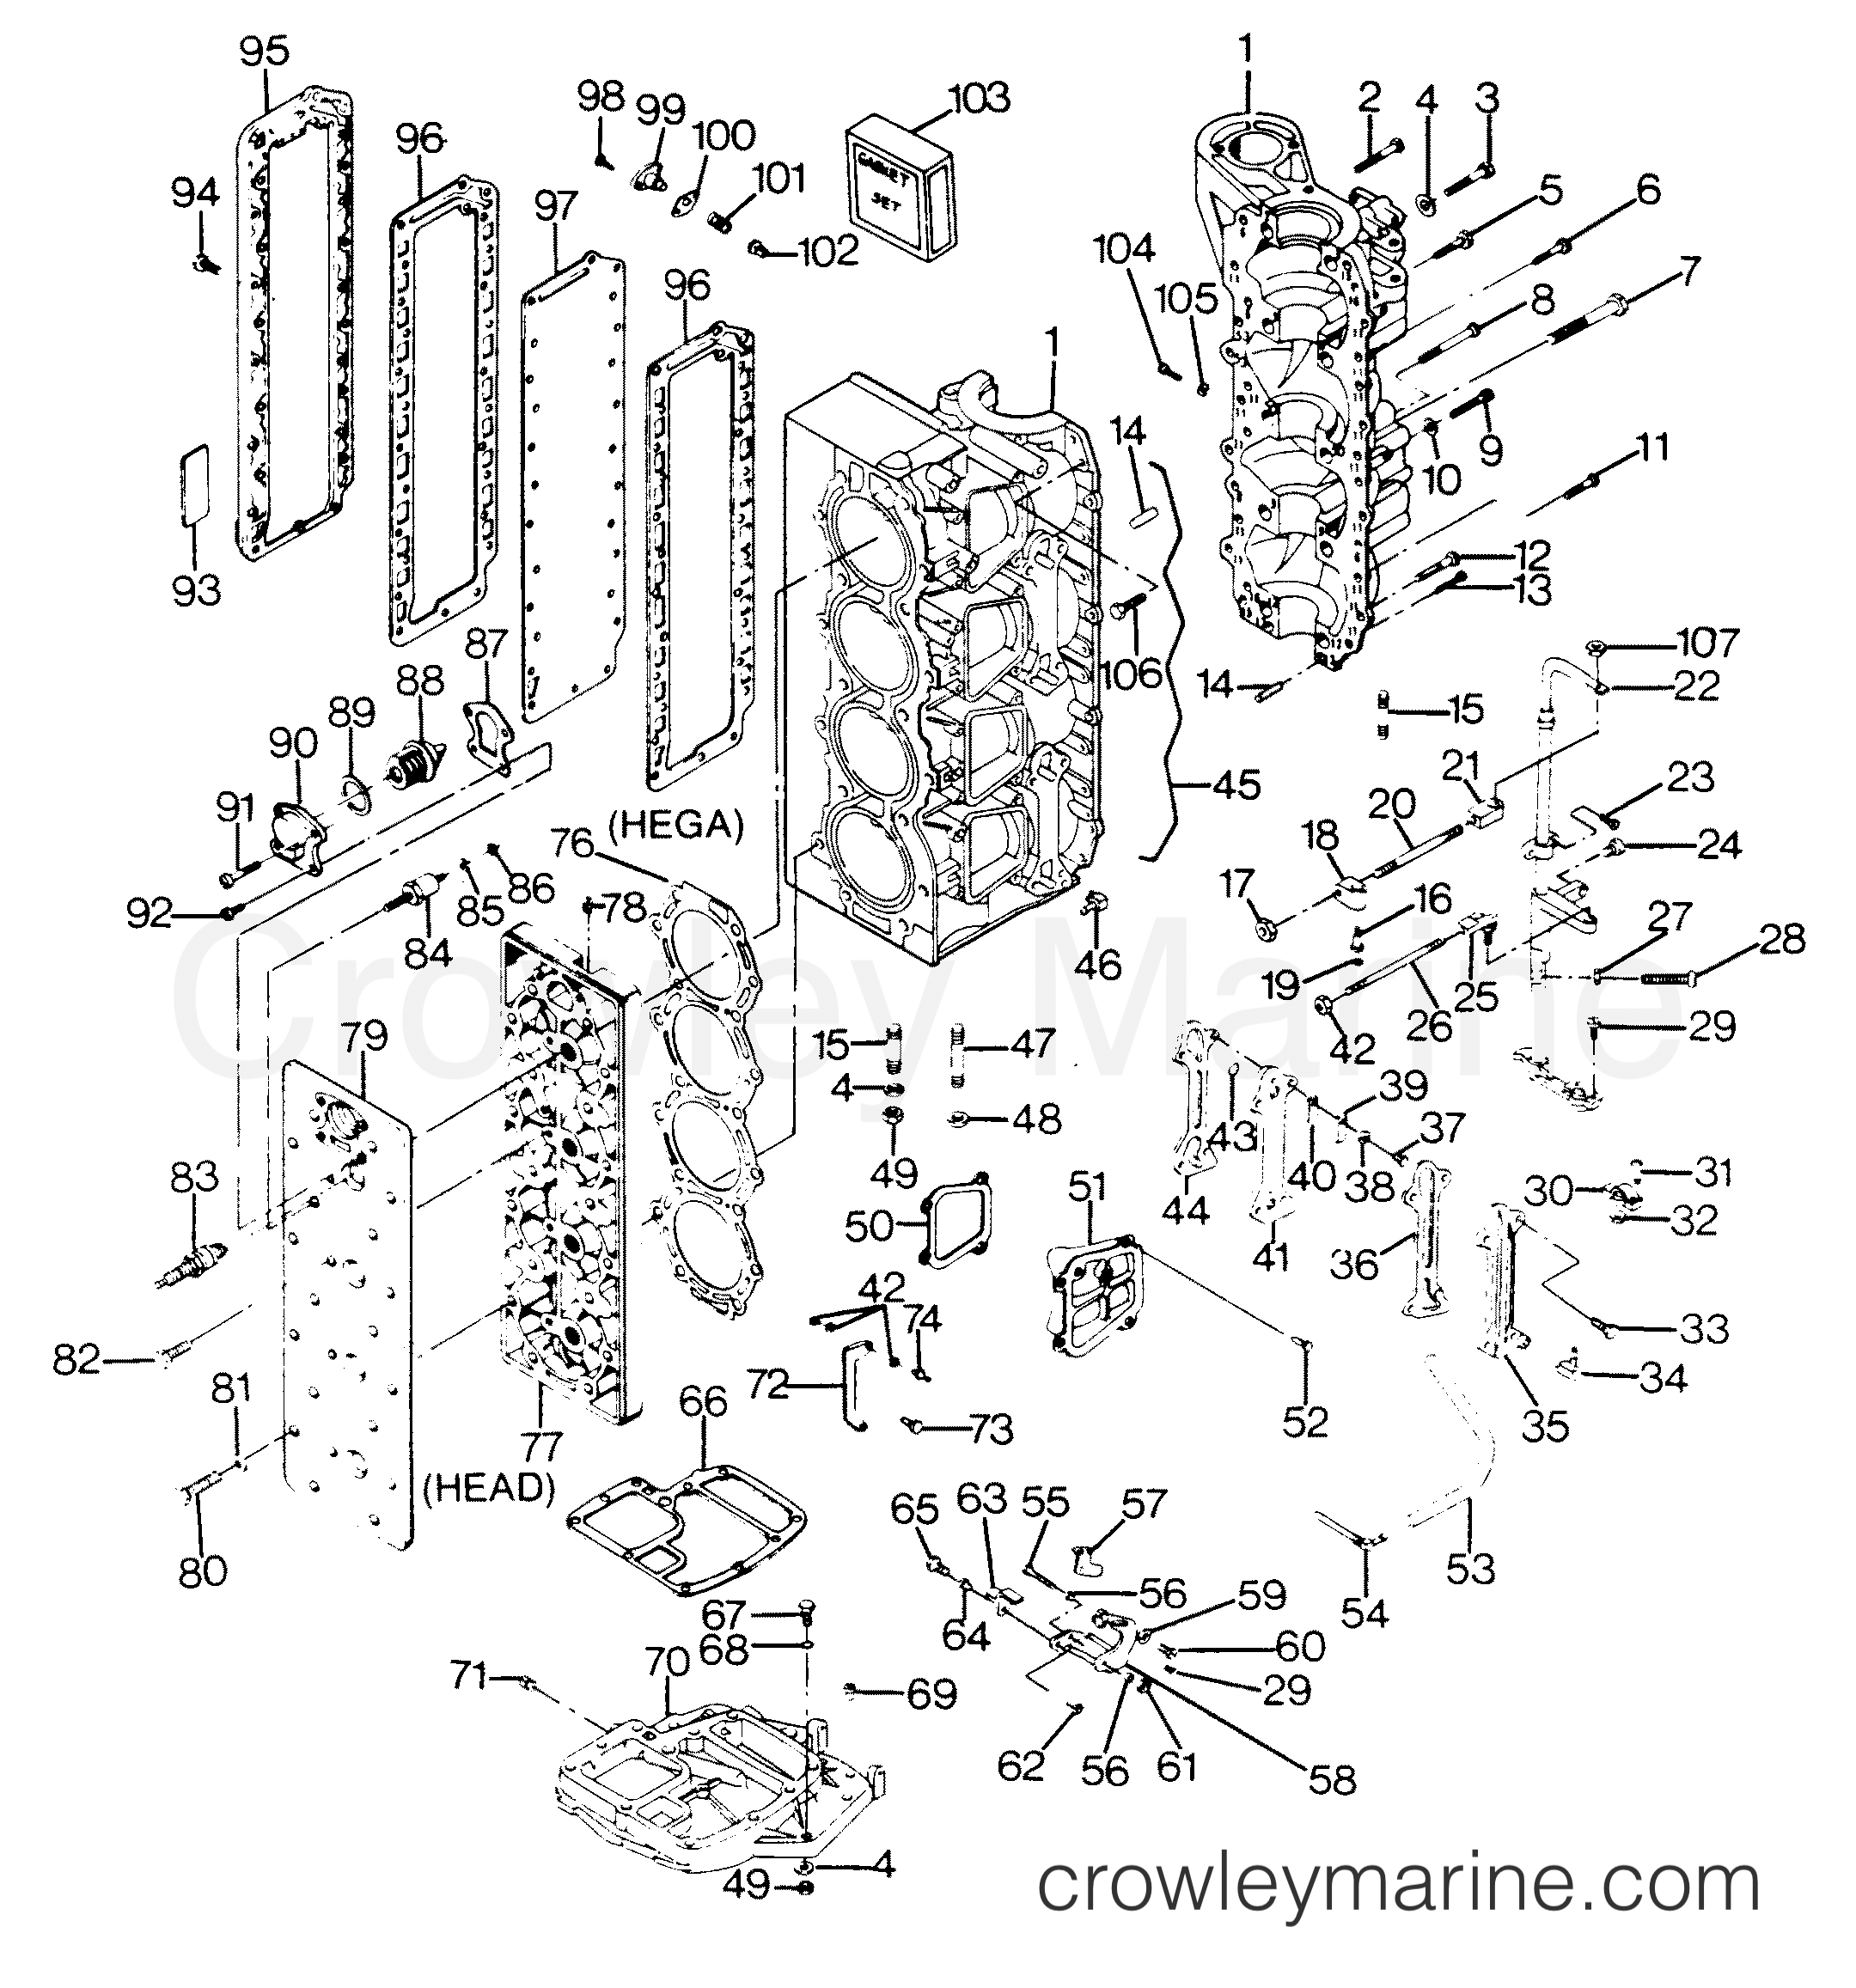 1995 mercury 40 hp outboard wiring diagram